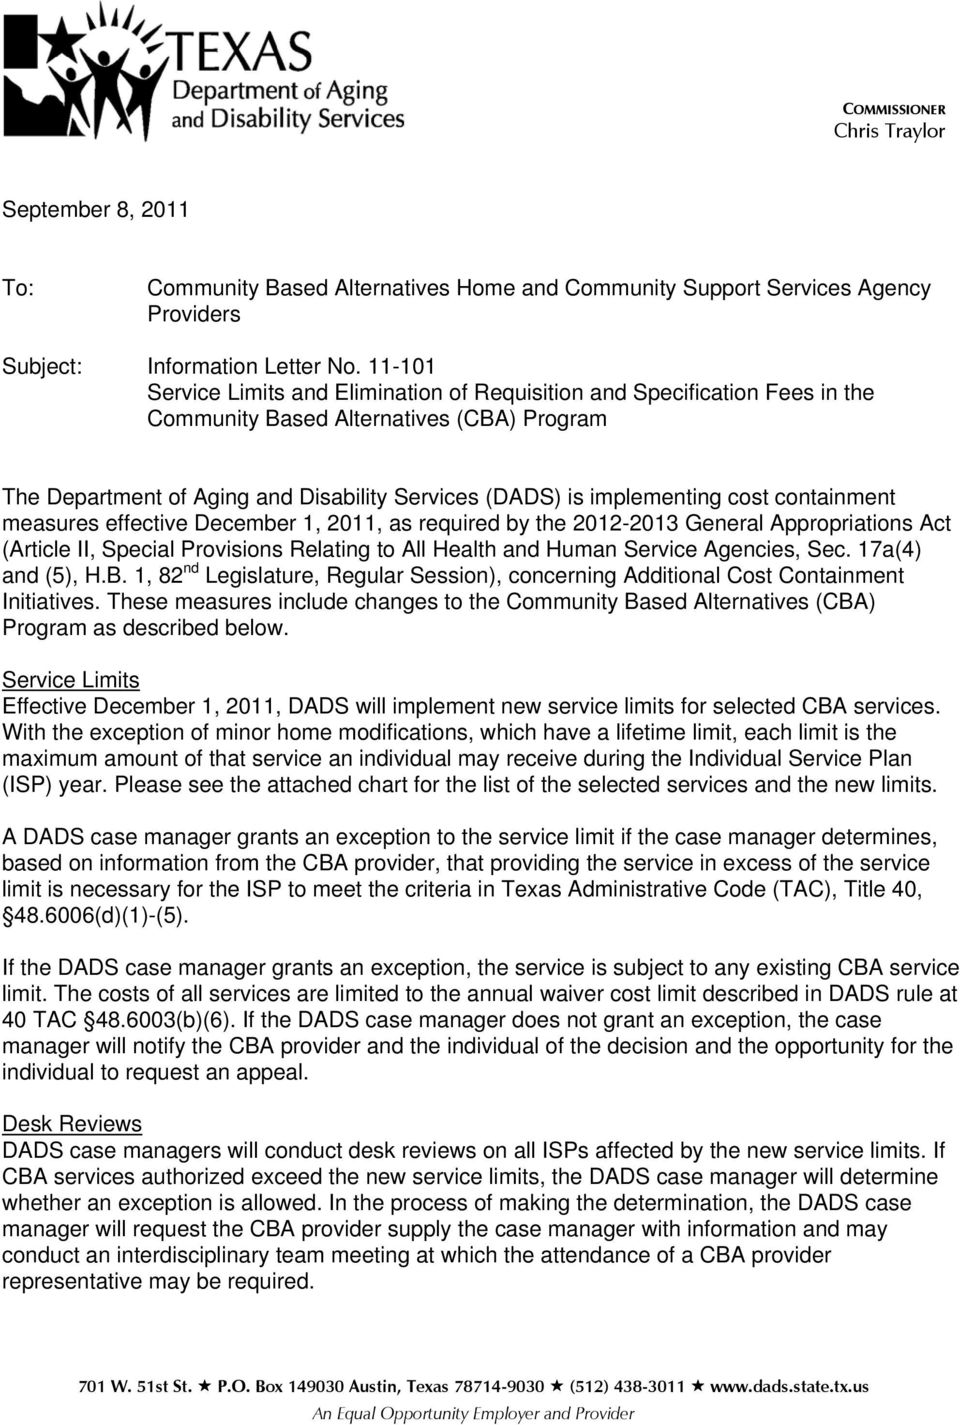 cost containment measures effective December 1, 2011, as required by the 2012-2013 General Appropriations Act (Article II, Special Provisions Relating to All Health and Human Service Agencies, Sec.